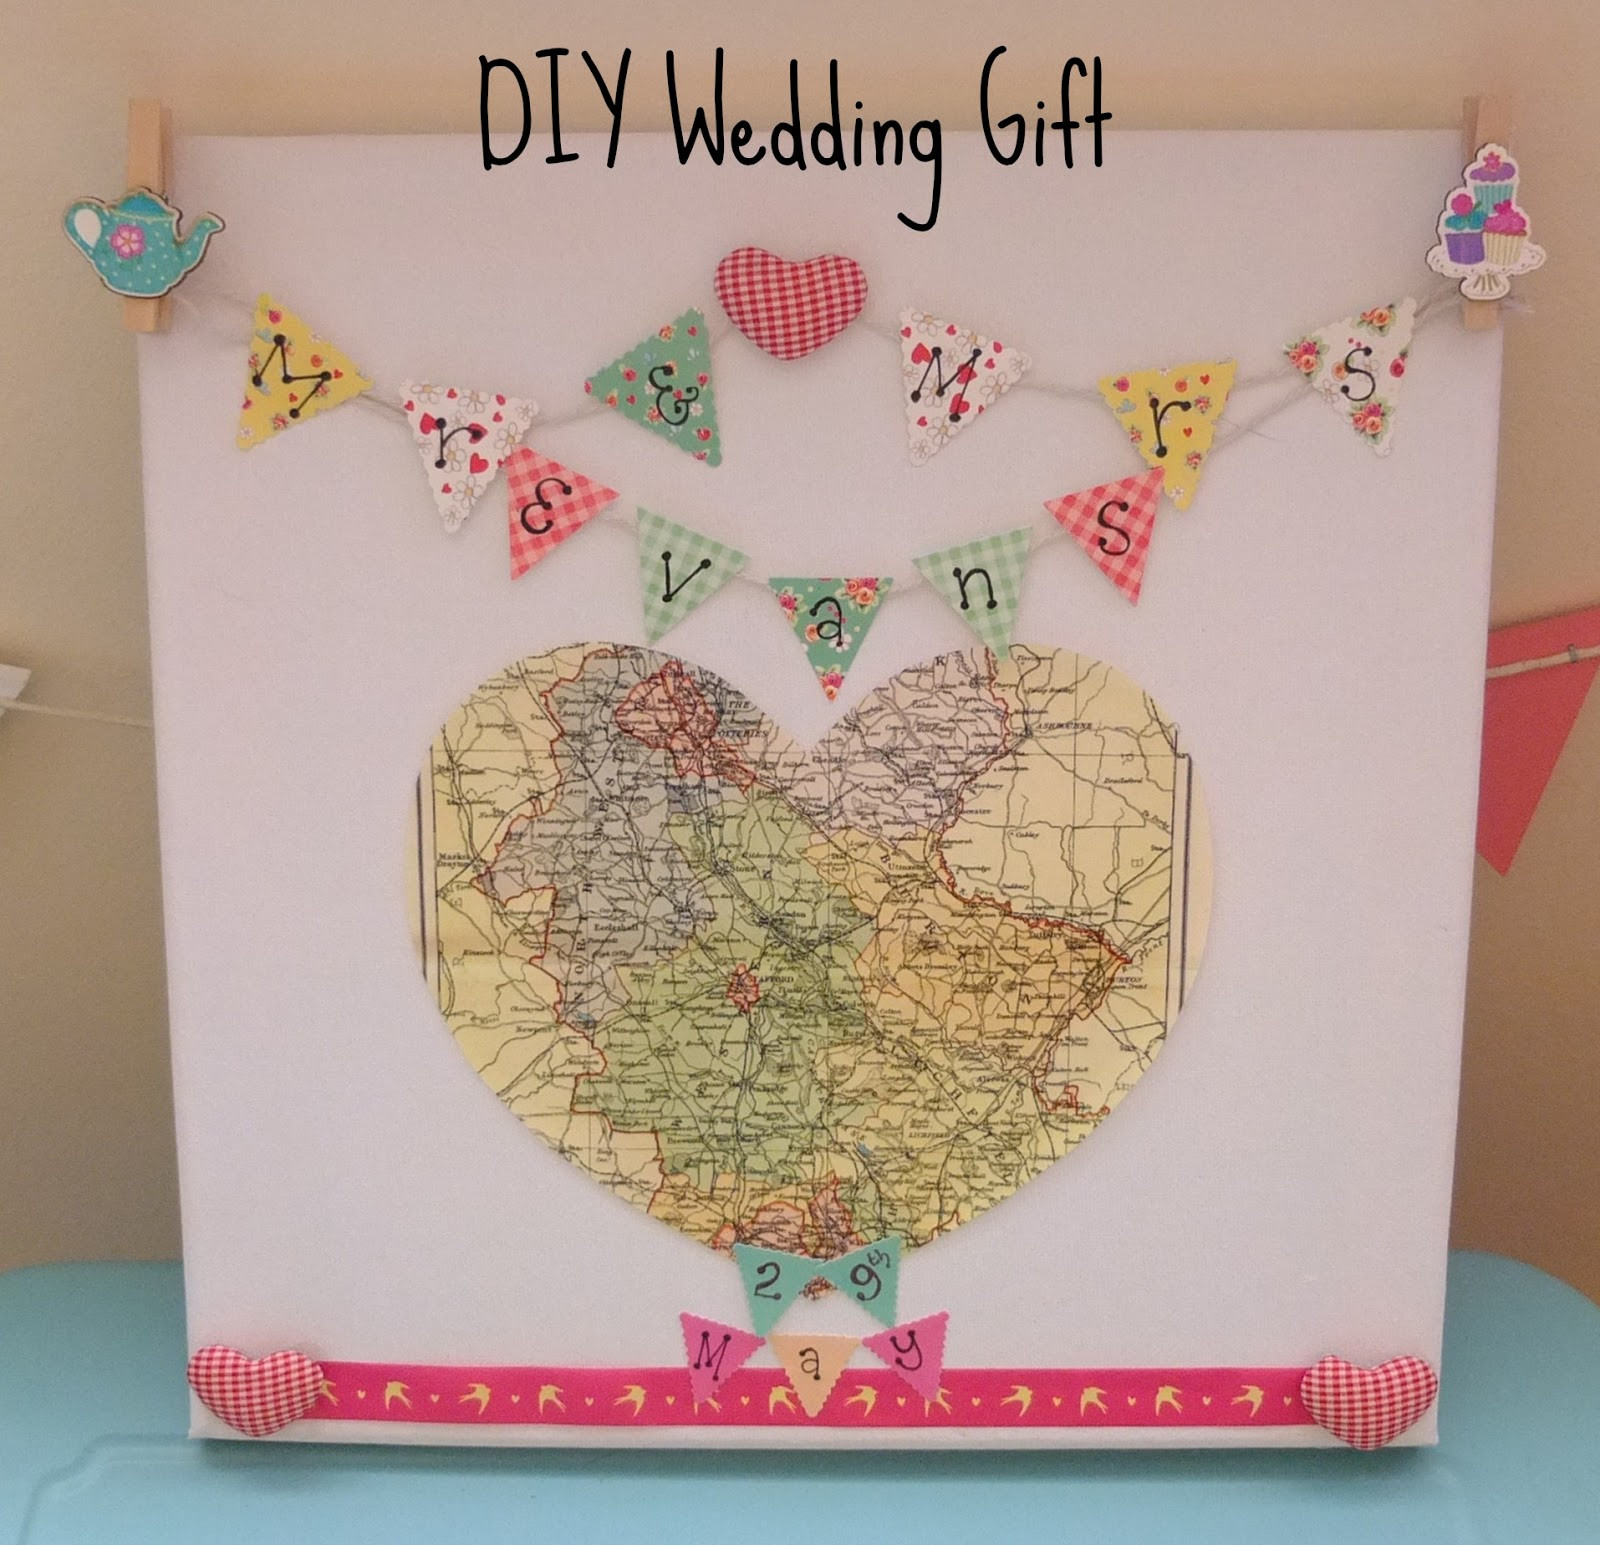 Best ideas about Wedding Gift DIY . Save or Pin DIY Wedding Gift on a Bud Hello Terri Lowe Now.